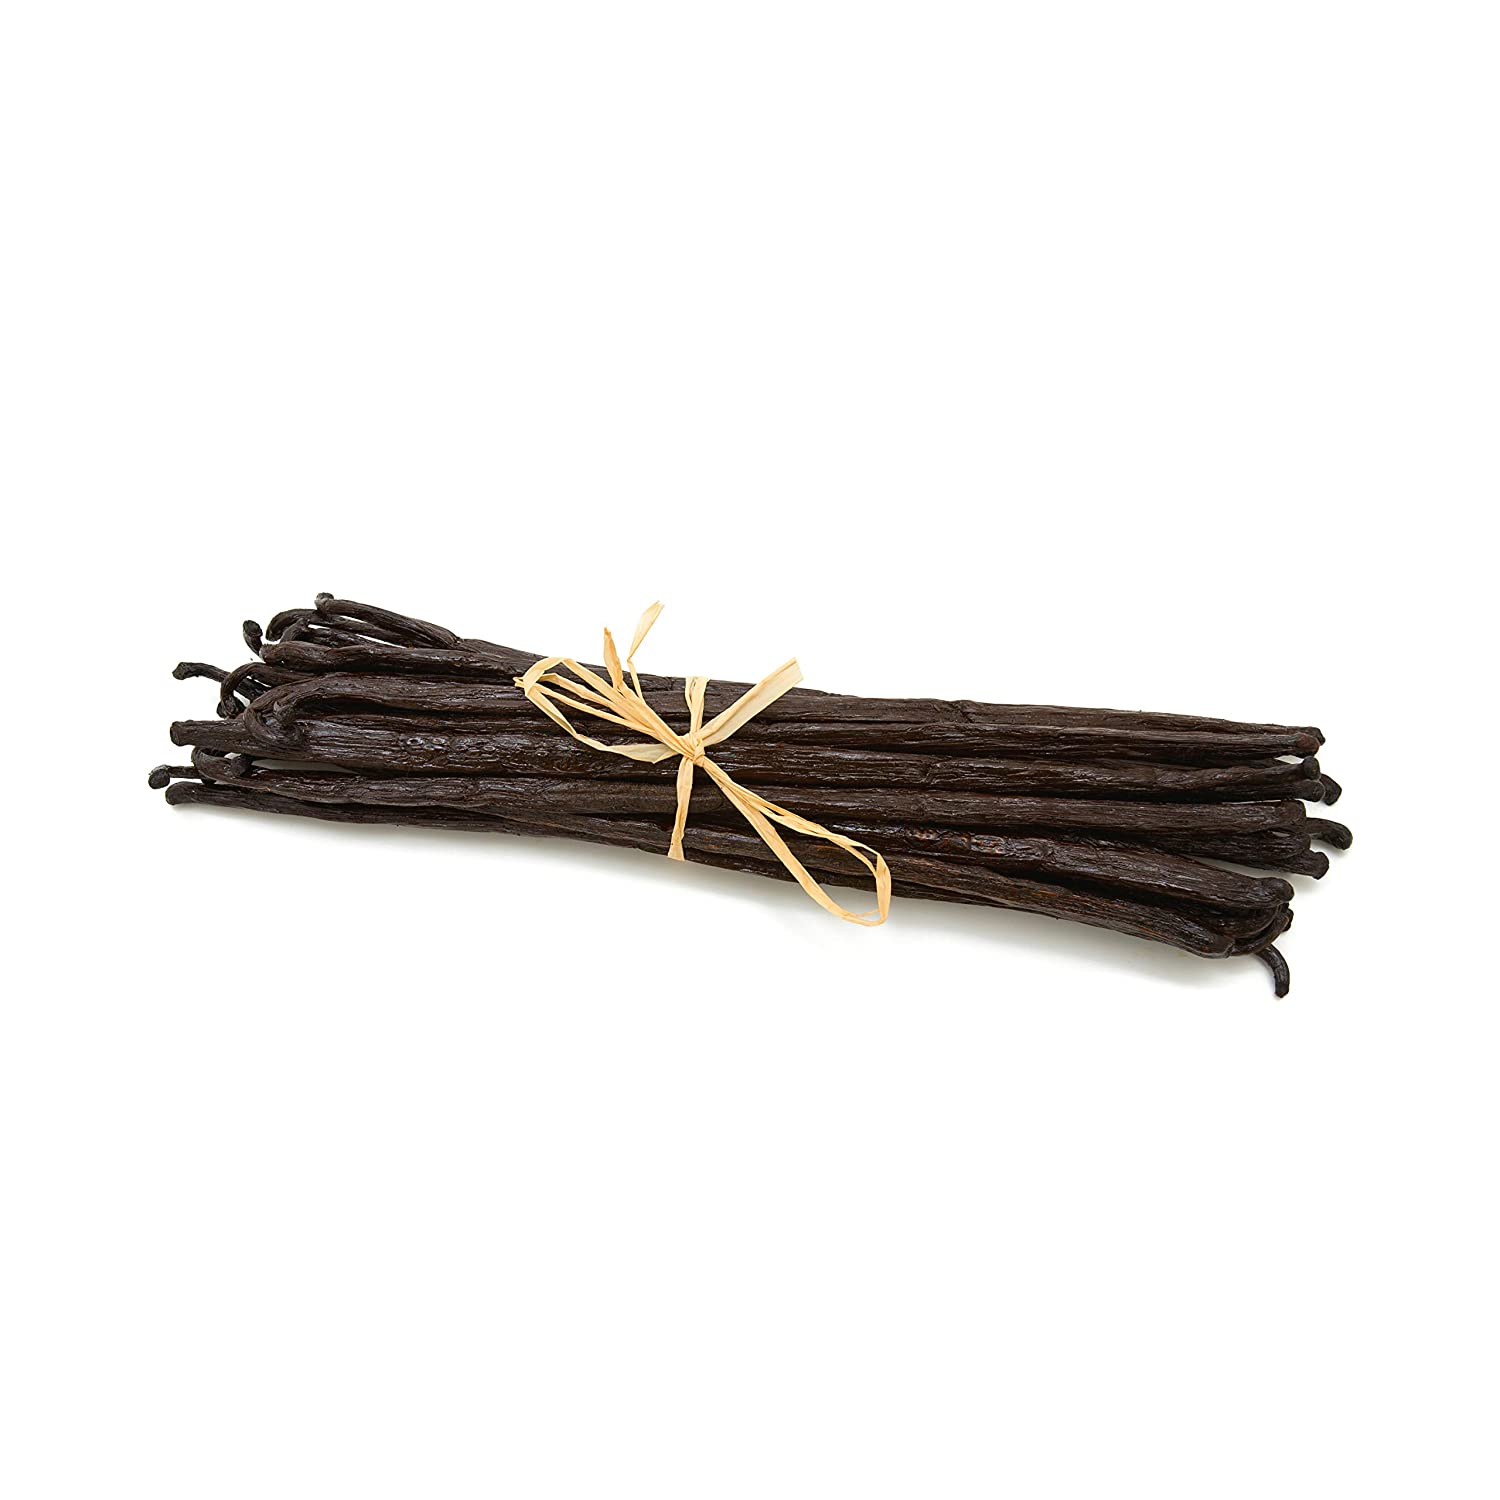 10 Madagascar Vanilla Special sale item Beans Whole Free Shipping New A Pods Vanil for Grade